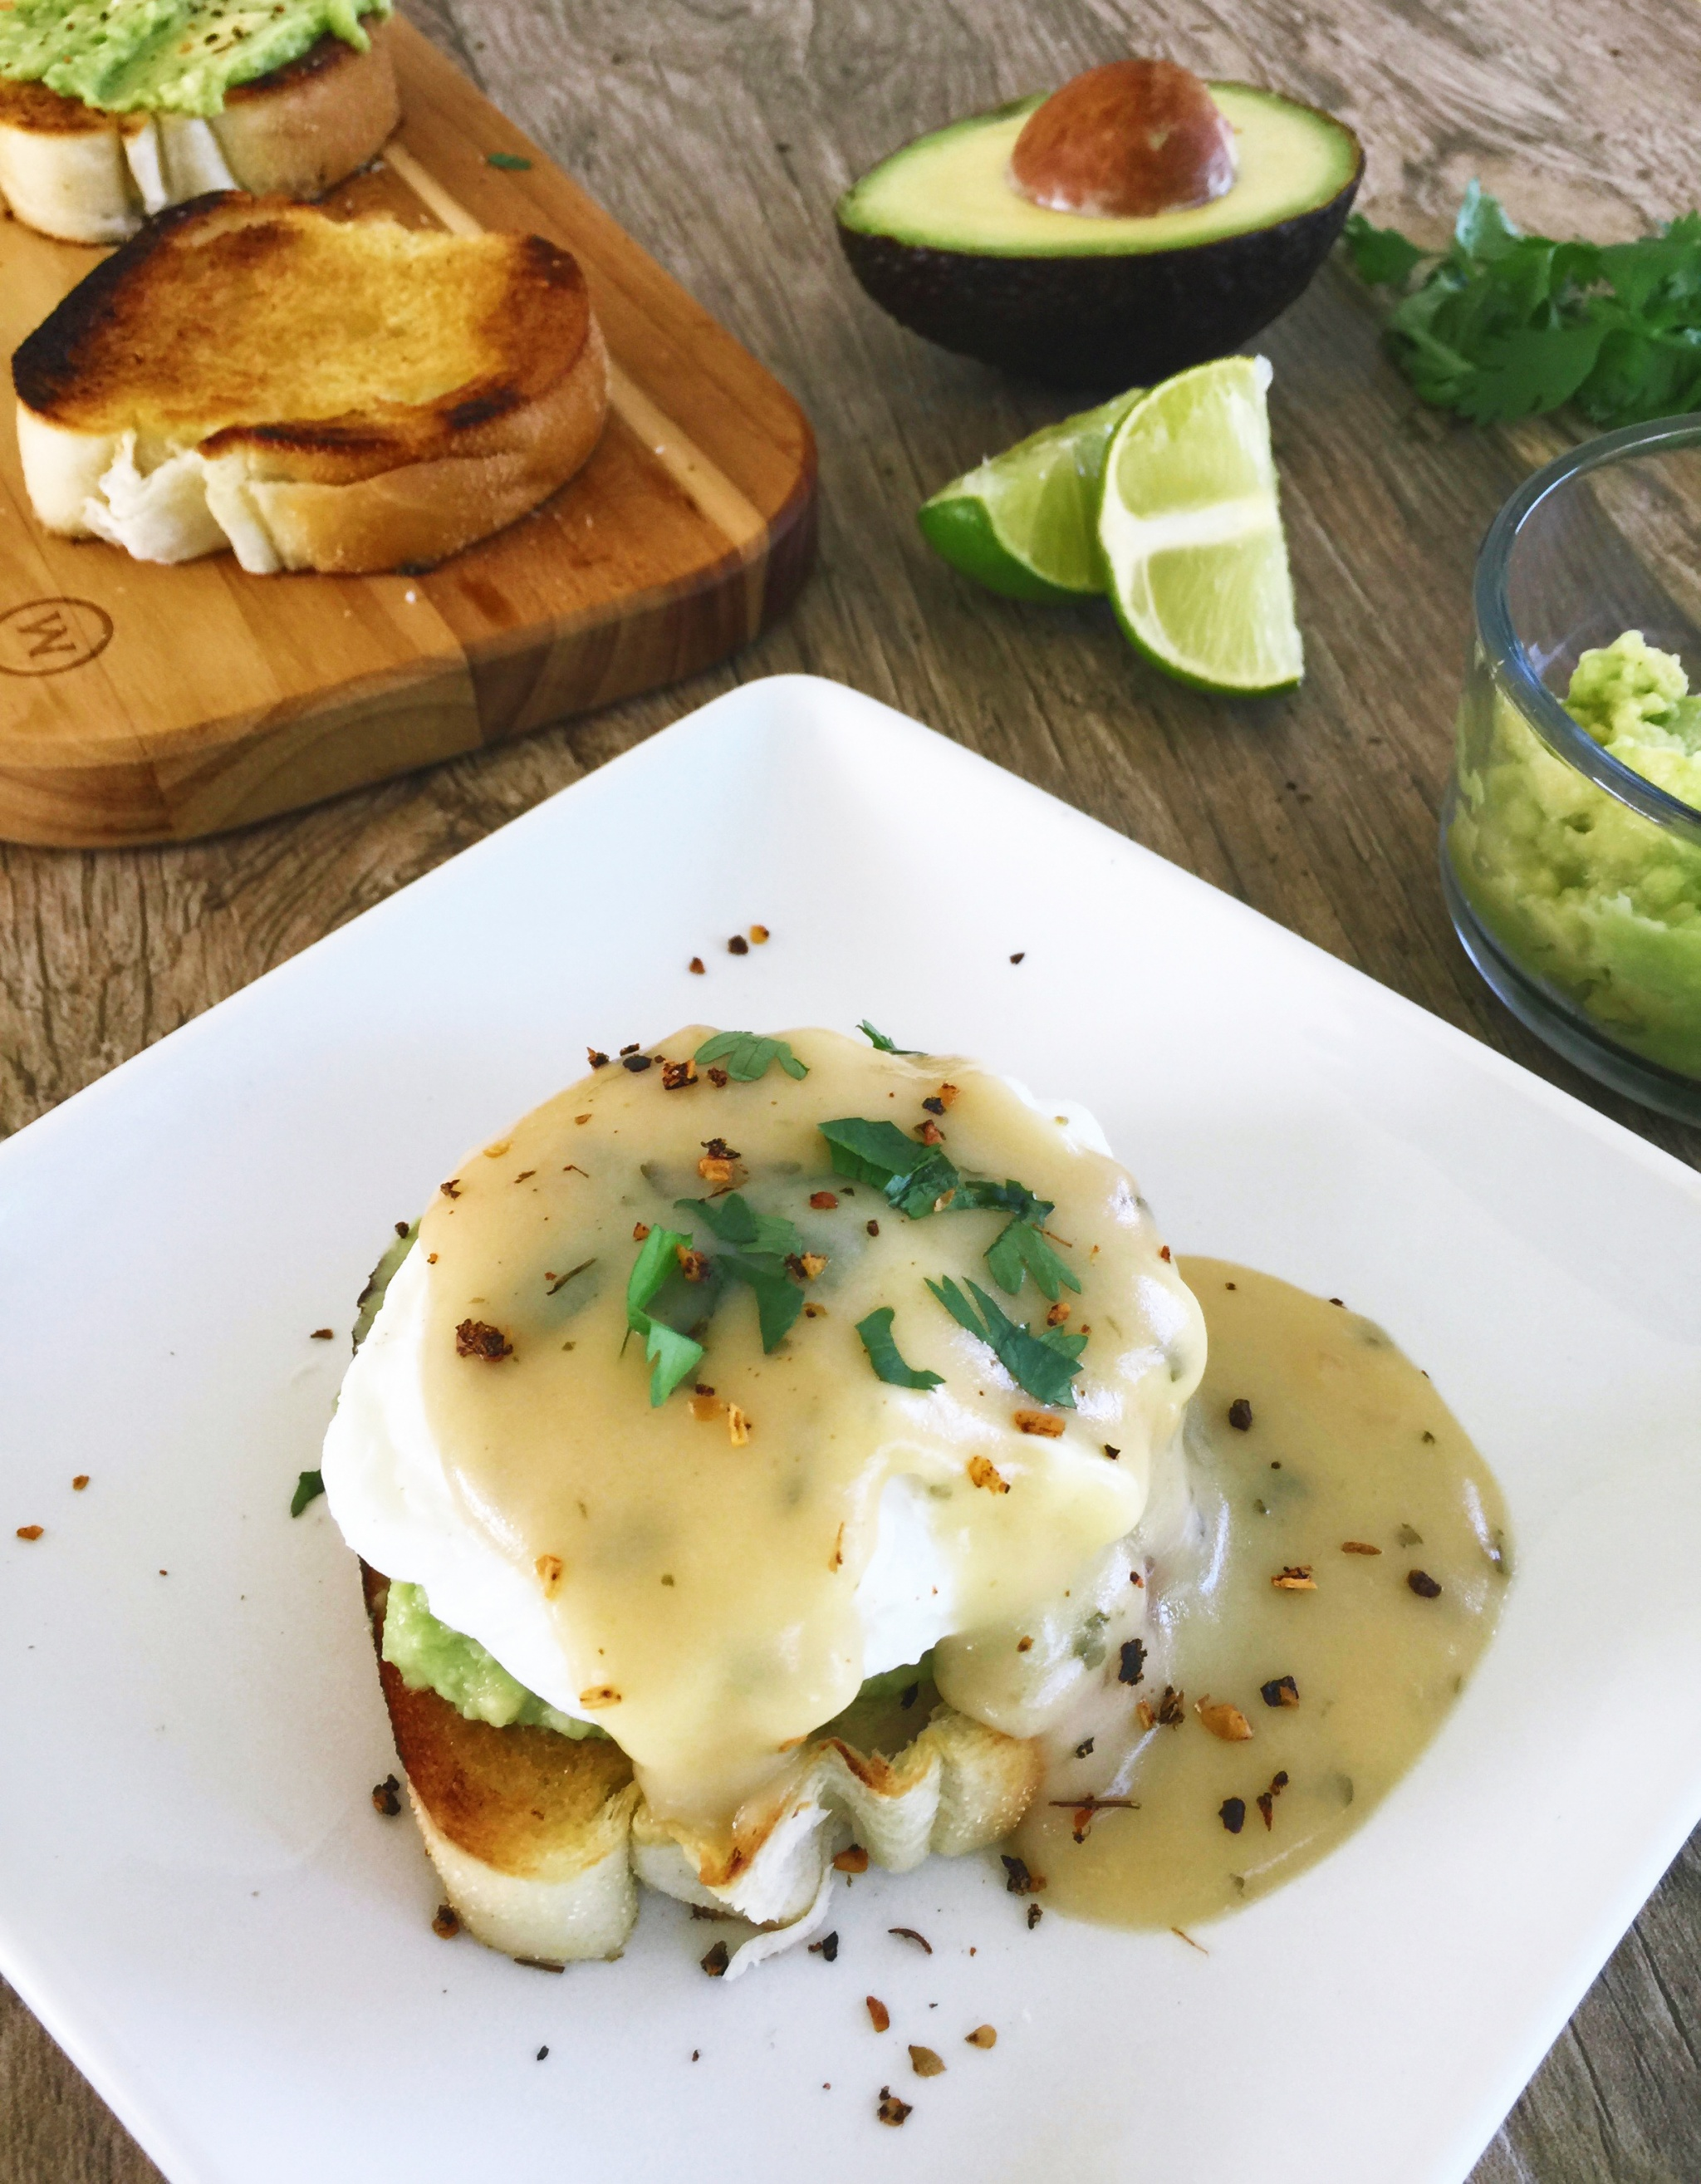 Avocado Toast Eggs Benedict With Cilantro Hollandaise Sauce